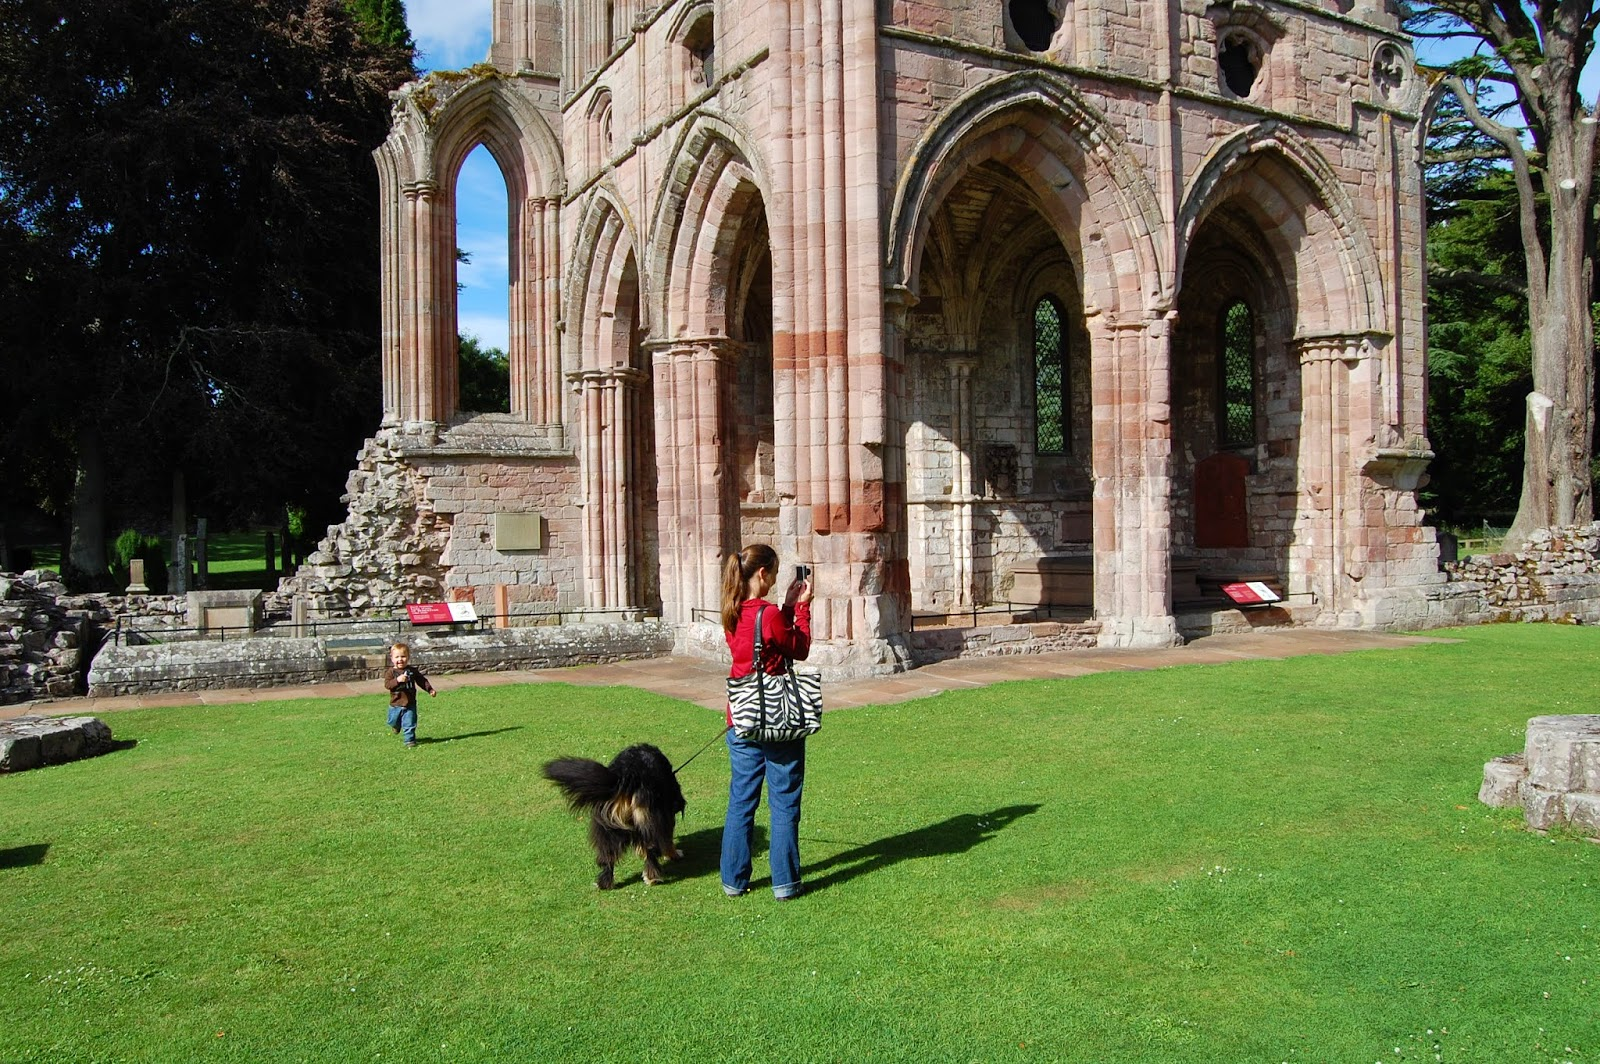 Sir Walter Scott's tomb at Dryburgh Abbey